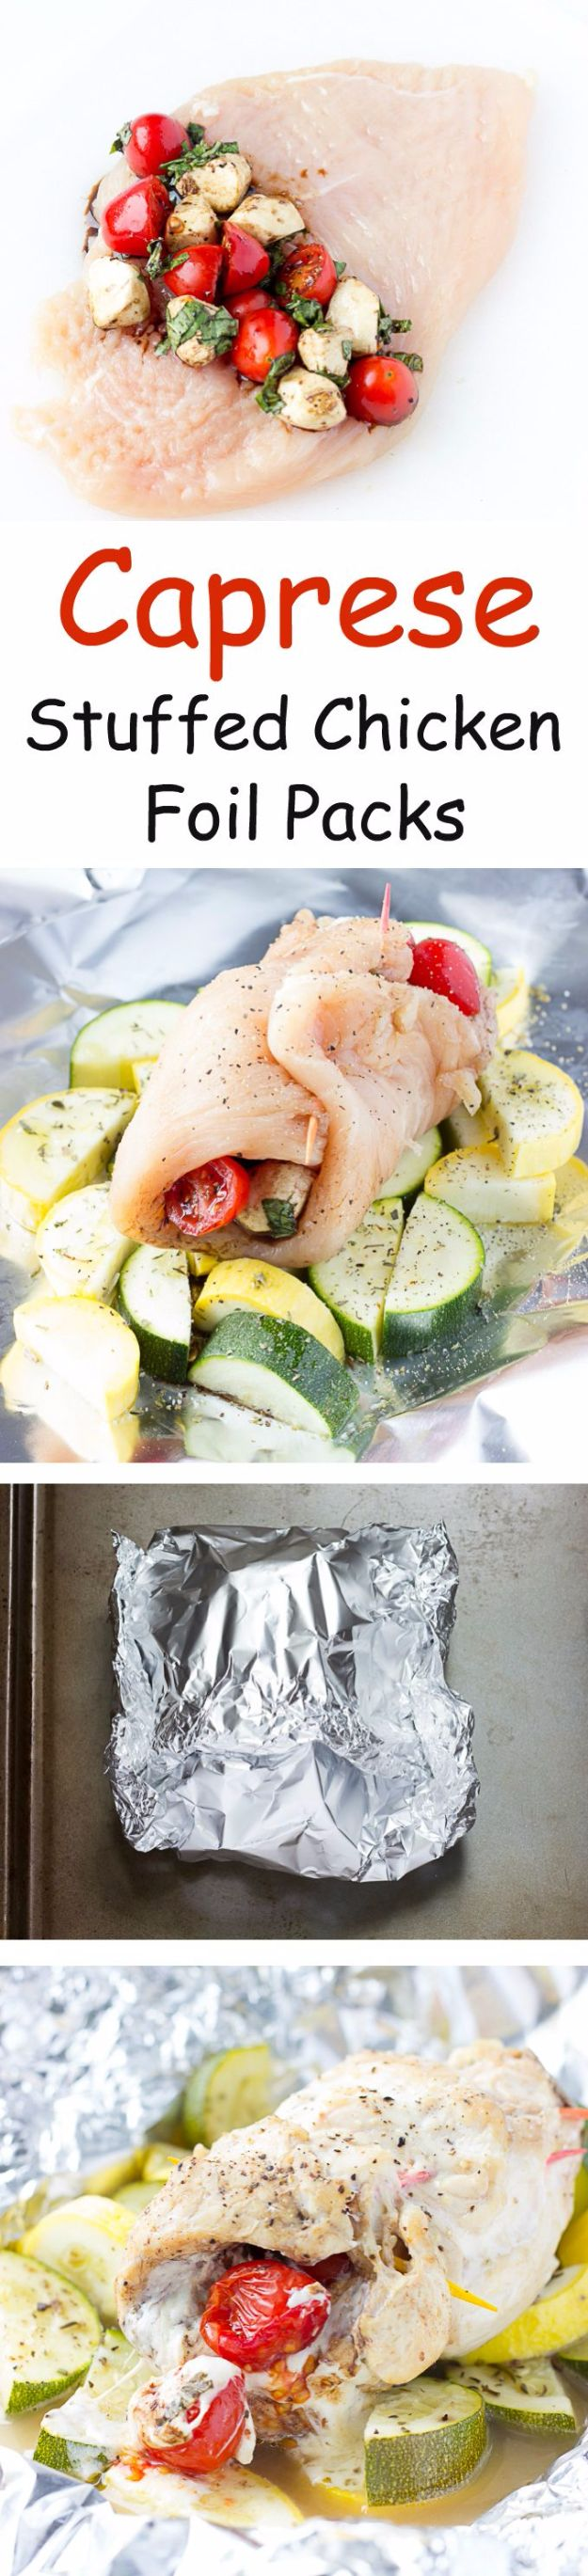 Tin Foil Camping Recipes - Caprese Stuffed Chicken Foil Packs - DIY Tin Foil Dinners, Ideas for Camping Trips and On Grill. Hamburger, Chicken, Healthy, Fish, Steak , Easy Make Ahead Recipe Ideas for the Campfire. Breakfast, Lunch, Dinner and Dessert, Snacks all Wrapped in Foil for Quick Cooking #camping #tinfoilrecipes #campingrecipes